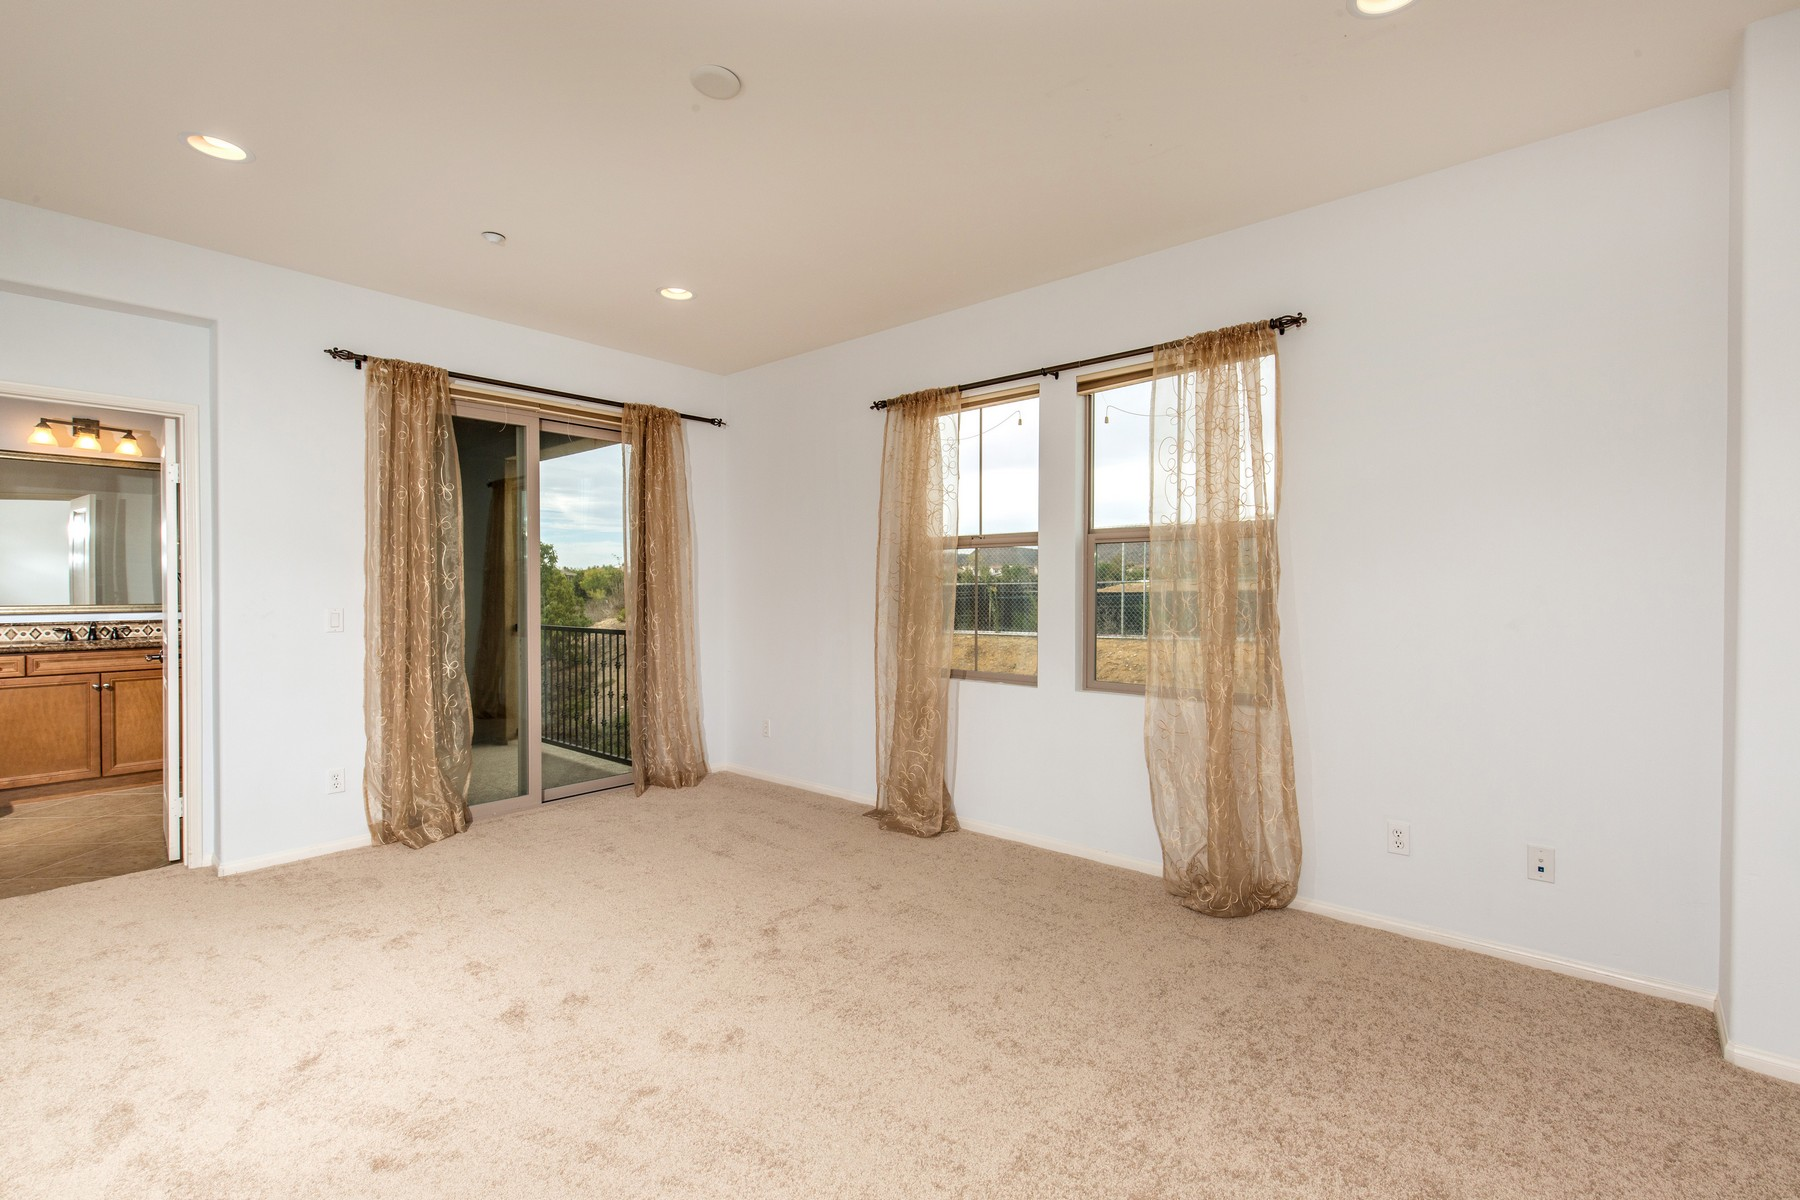 Additional photo for property listing at 8484 Christopher Ridge Terrace  San Diego, California 92127 United States